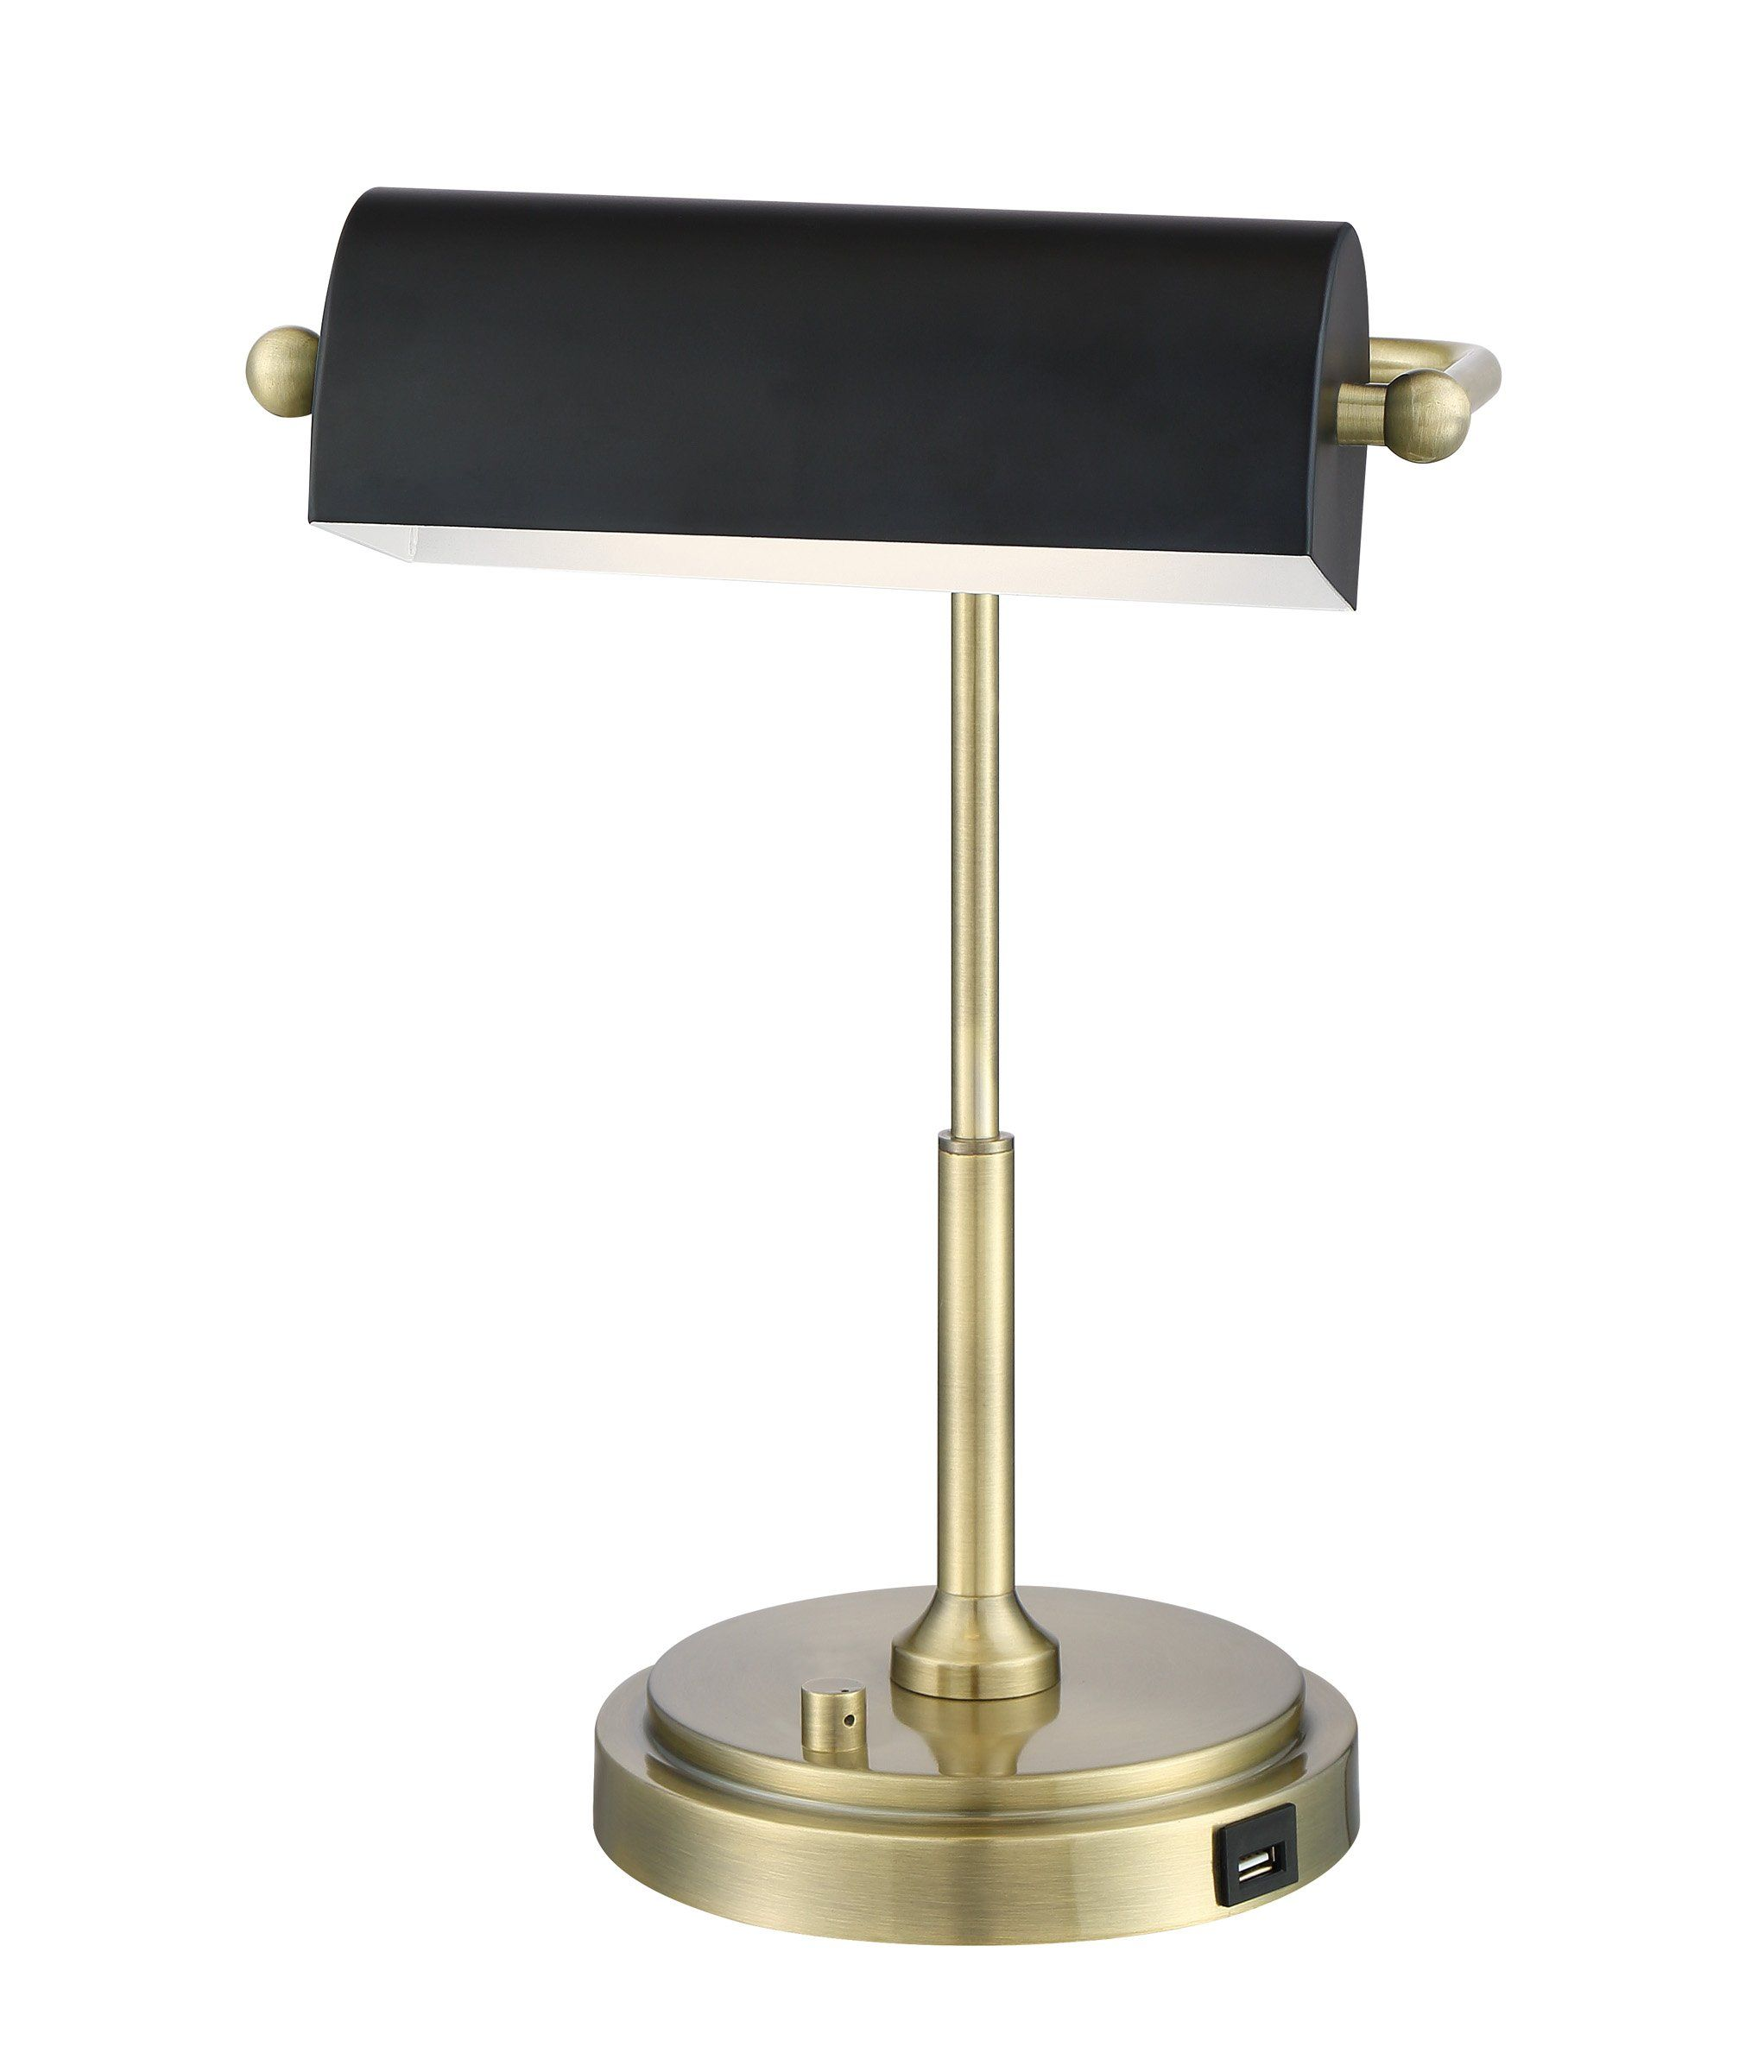 Brushed Gold Banker Desk Lamp with Black Shade – Caileb